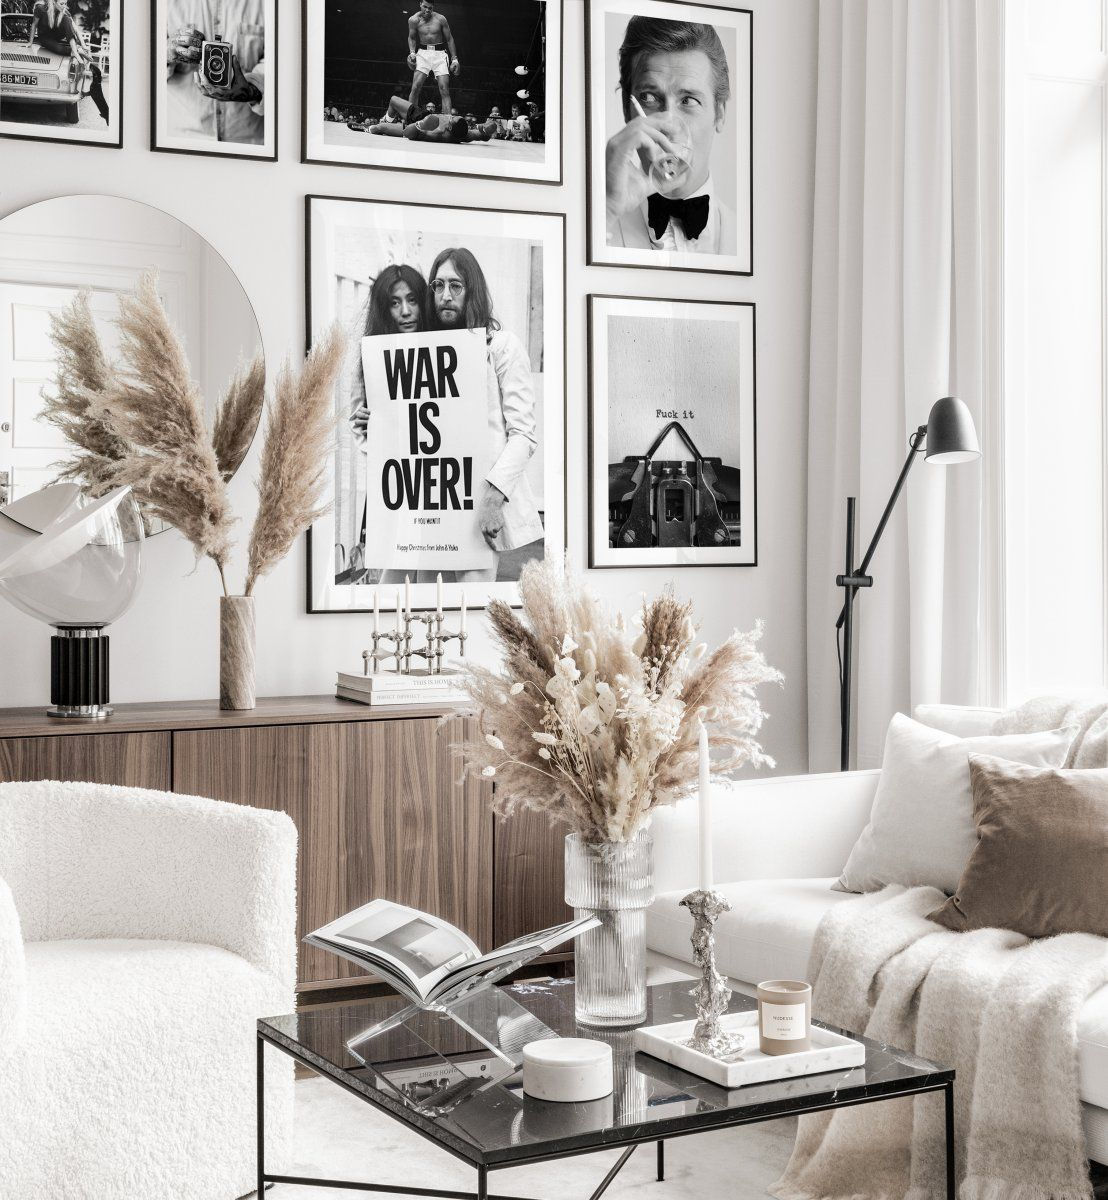 Black White Gallery Wall Iconic Vintage Posters Black Metal Frames Gallery Wall Inspirat Living Room Pictures Gallery Wall Inspiration Wall Decor Living Room